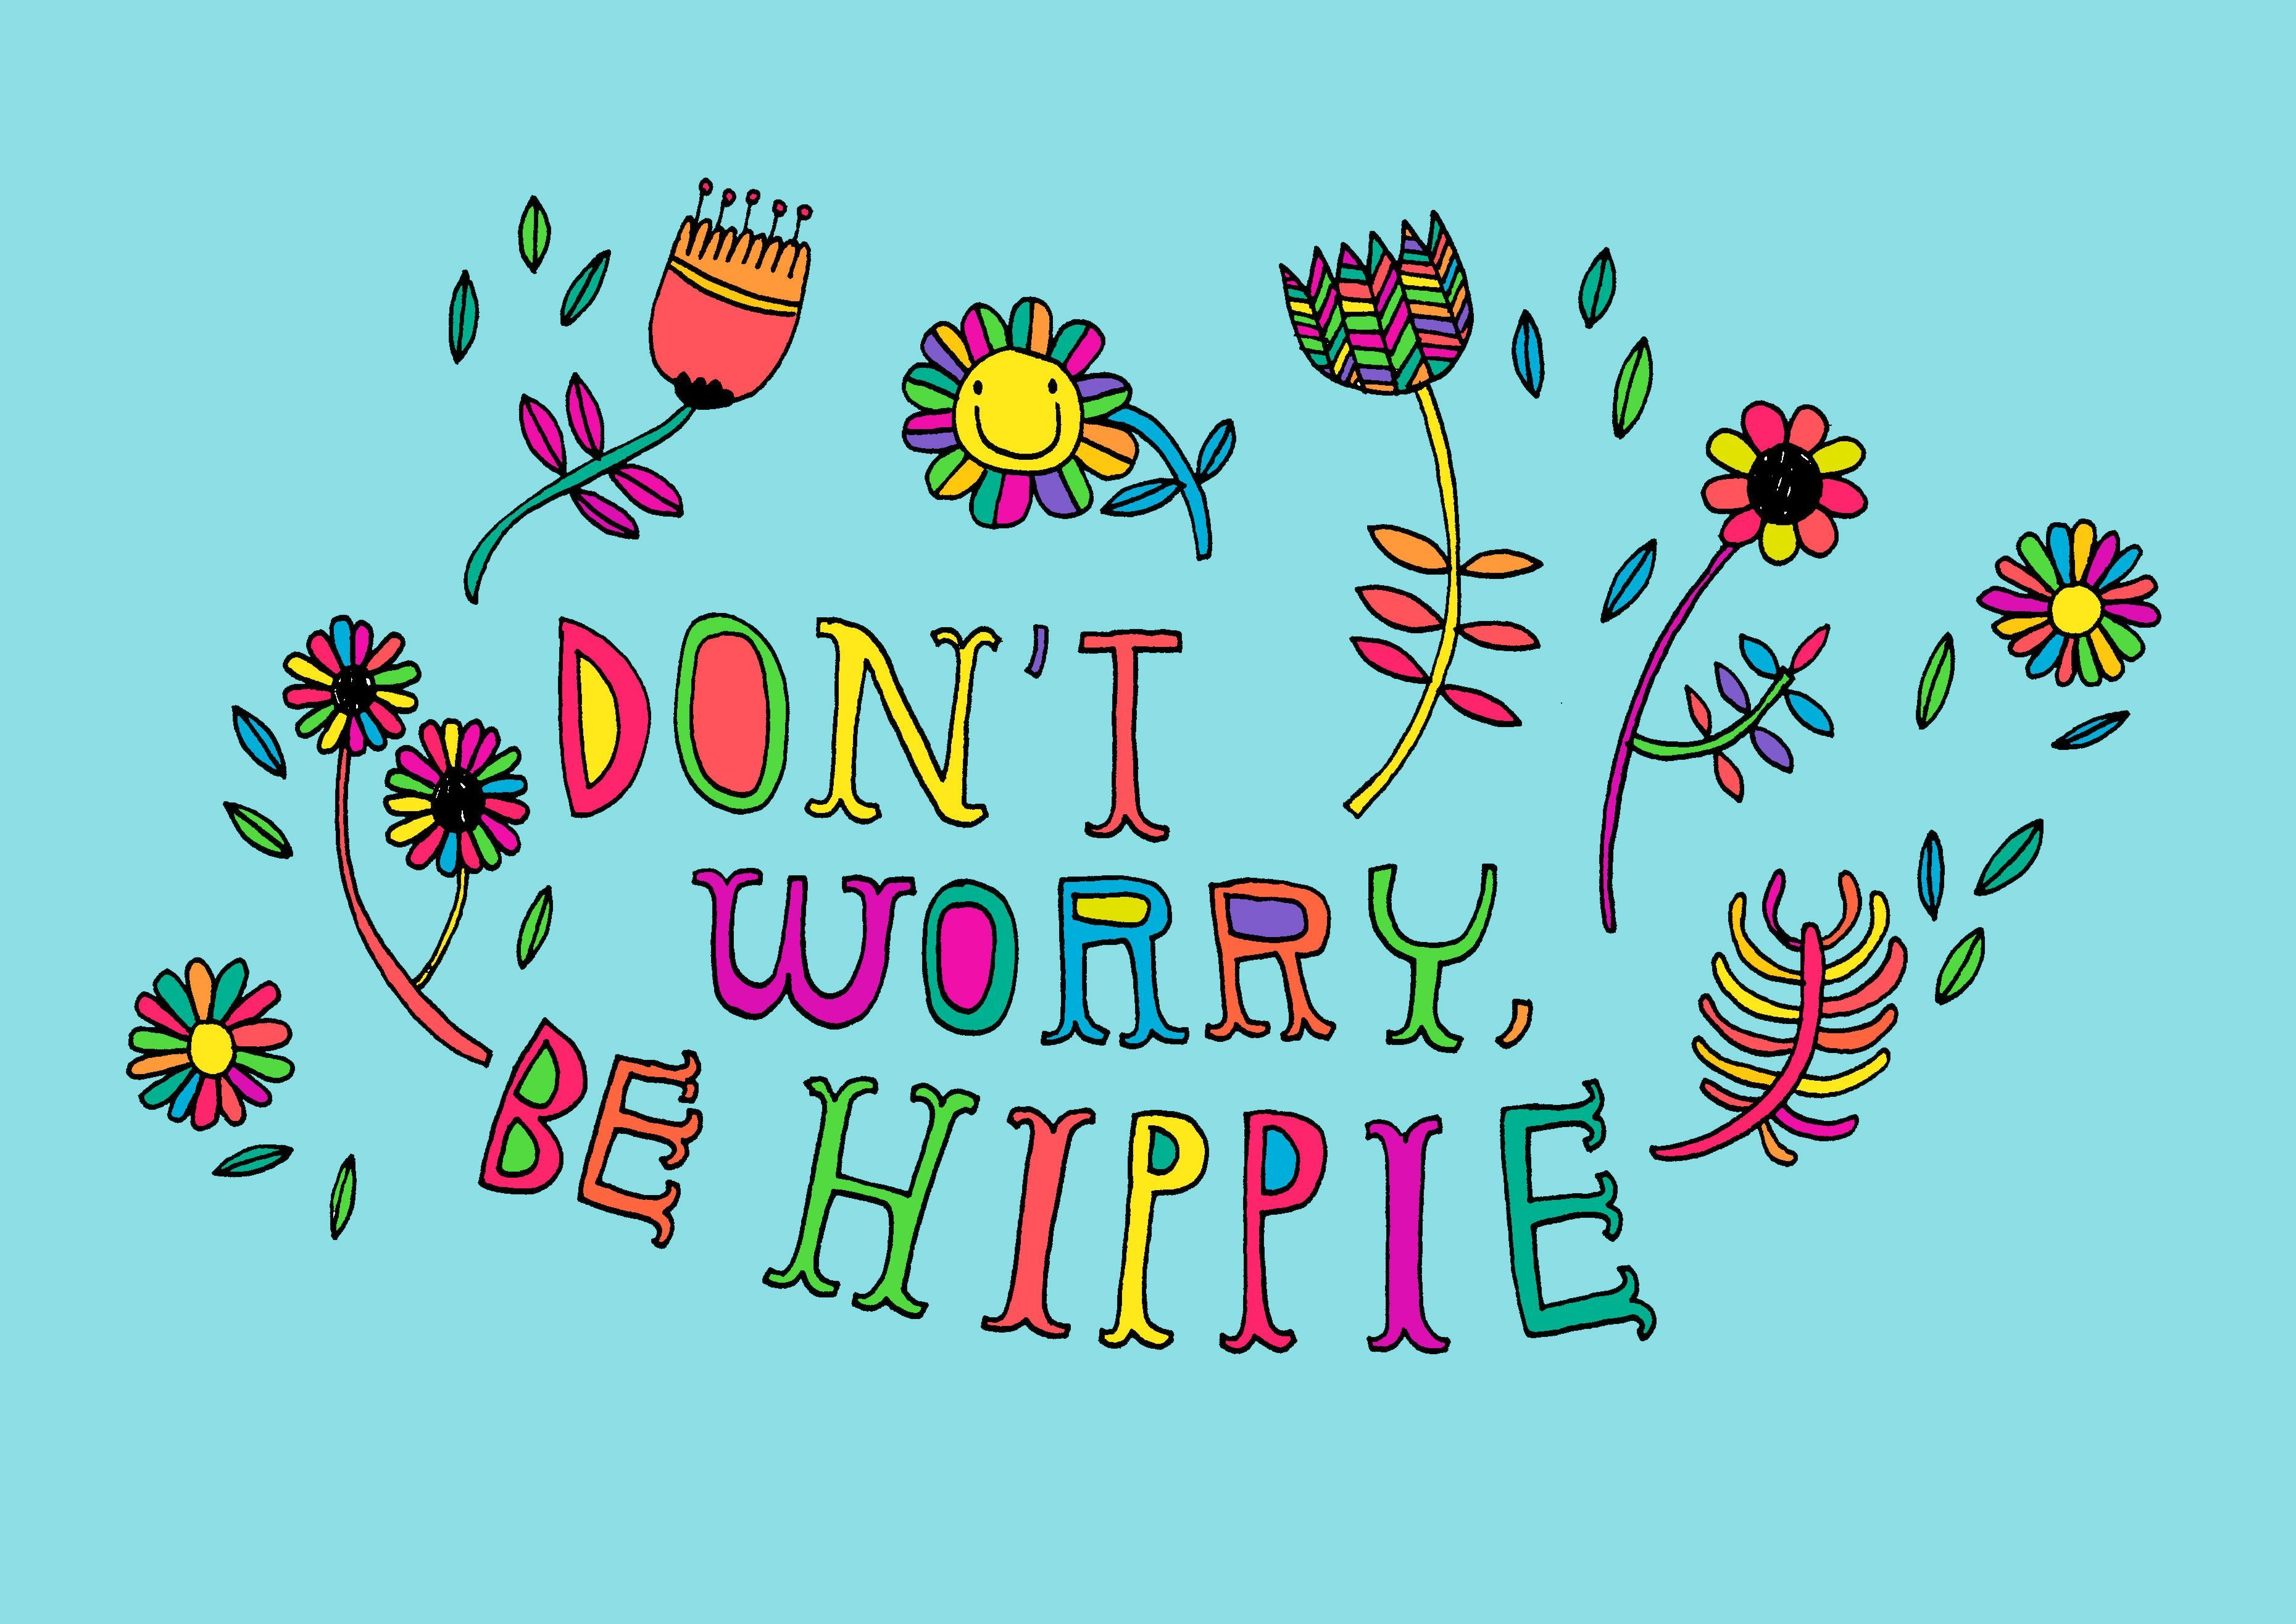 Free download Image result for tumblr hippie wallpaper Hippie ...